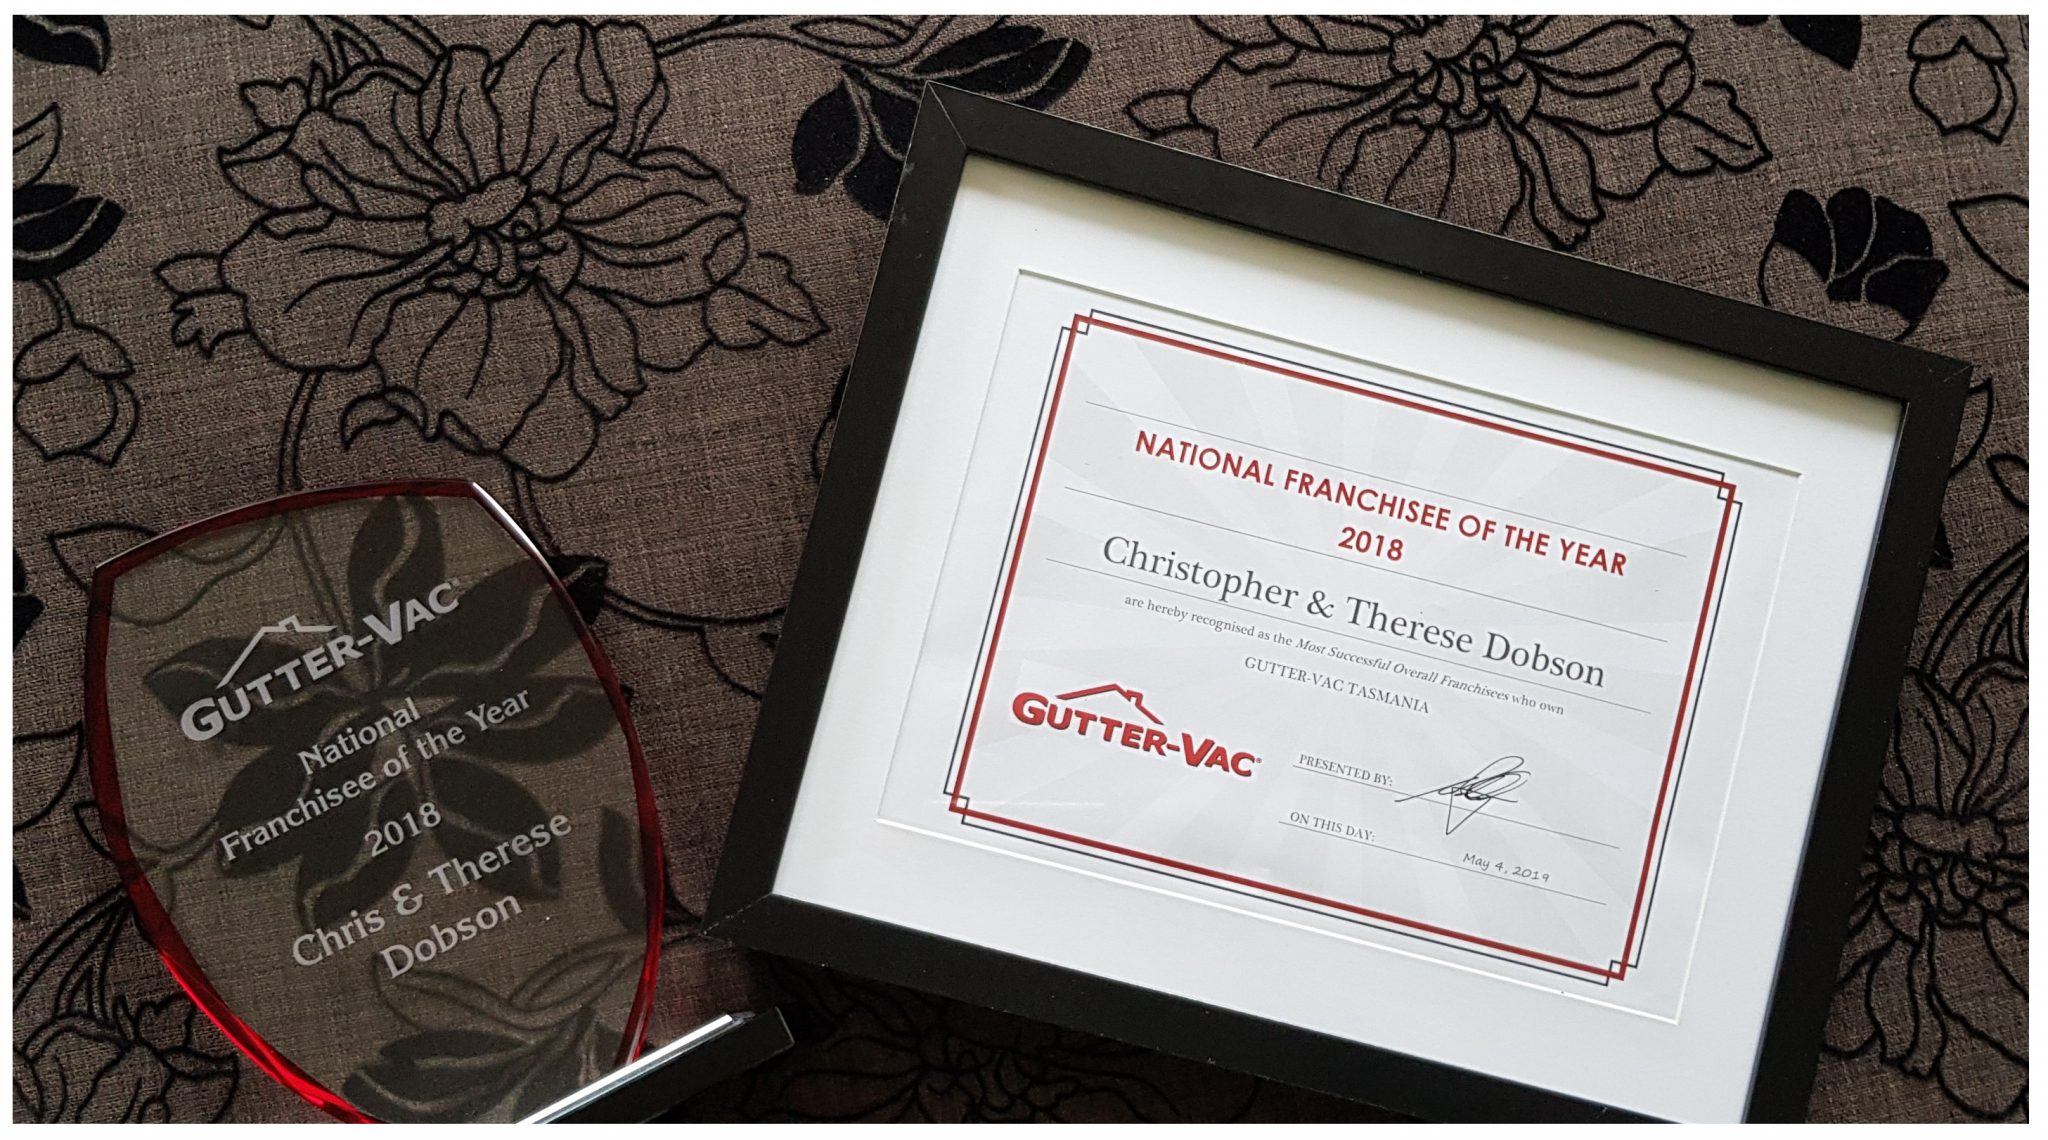 Gutter-Vac National Franchisee of the Year 2018 Award